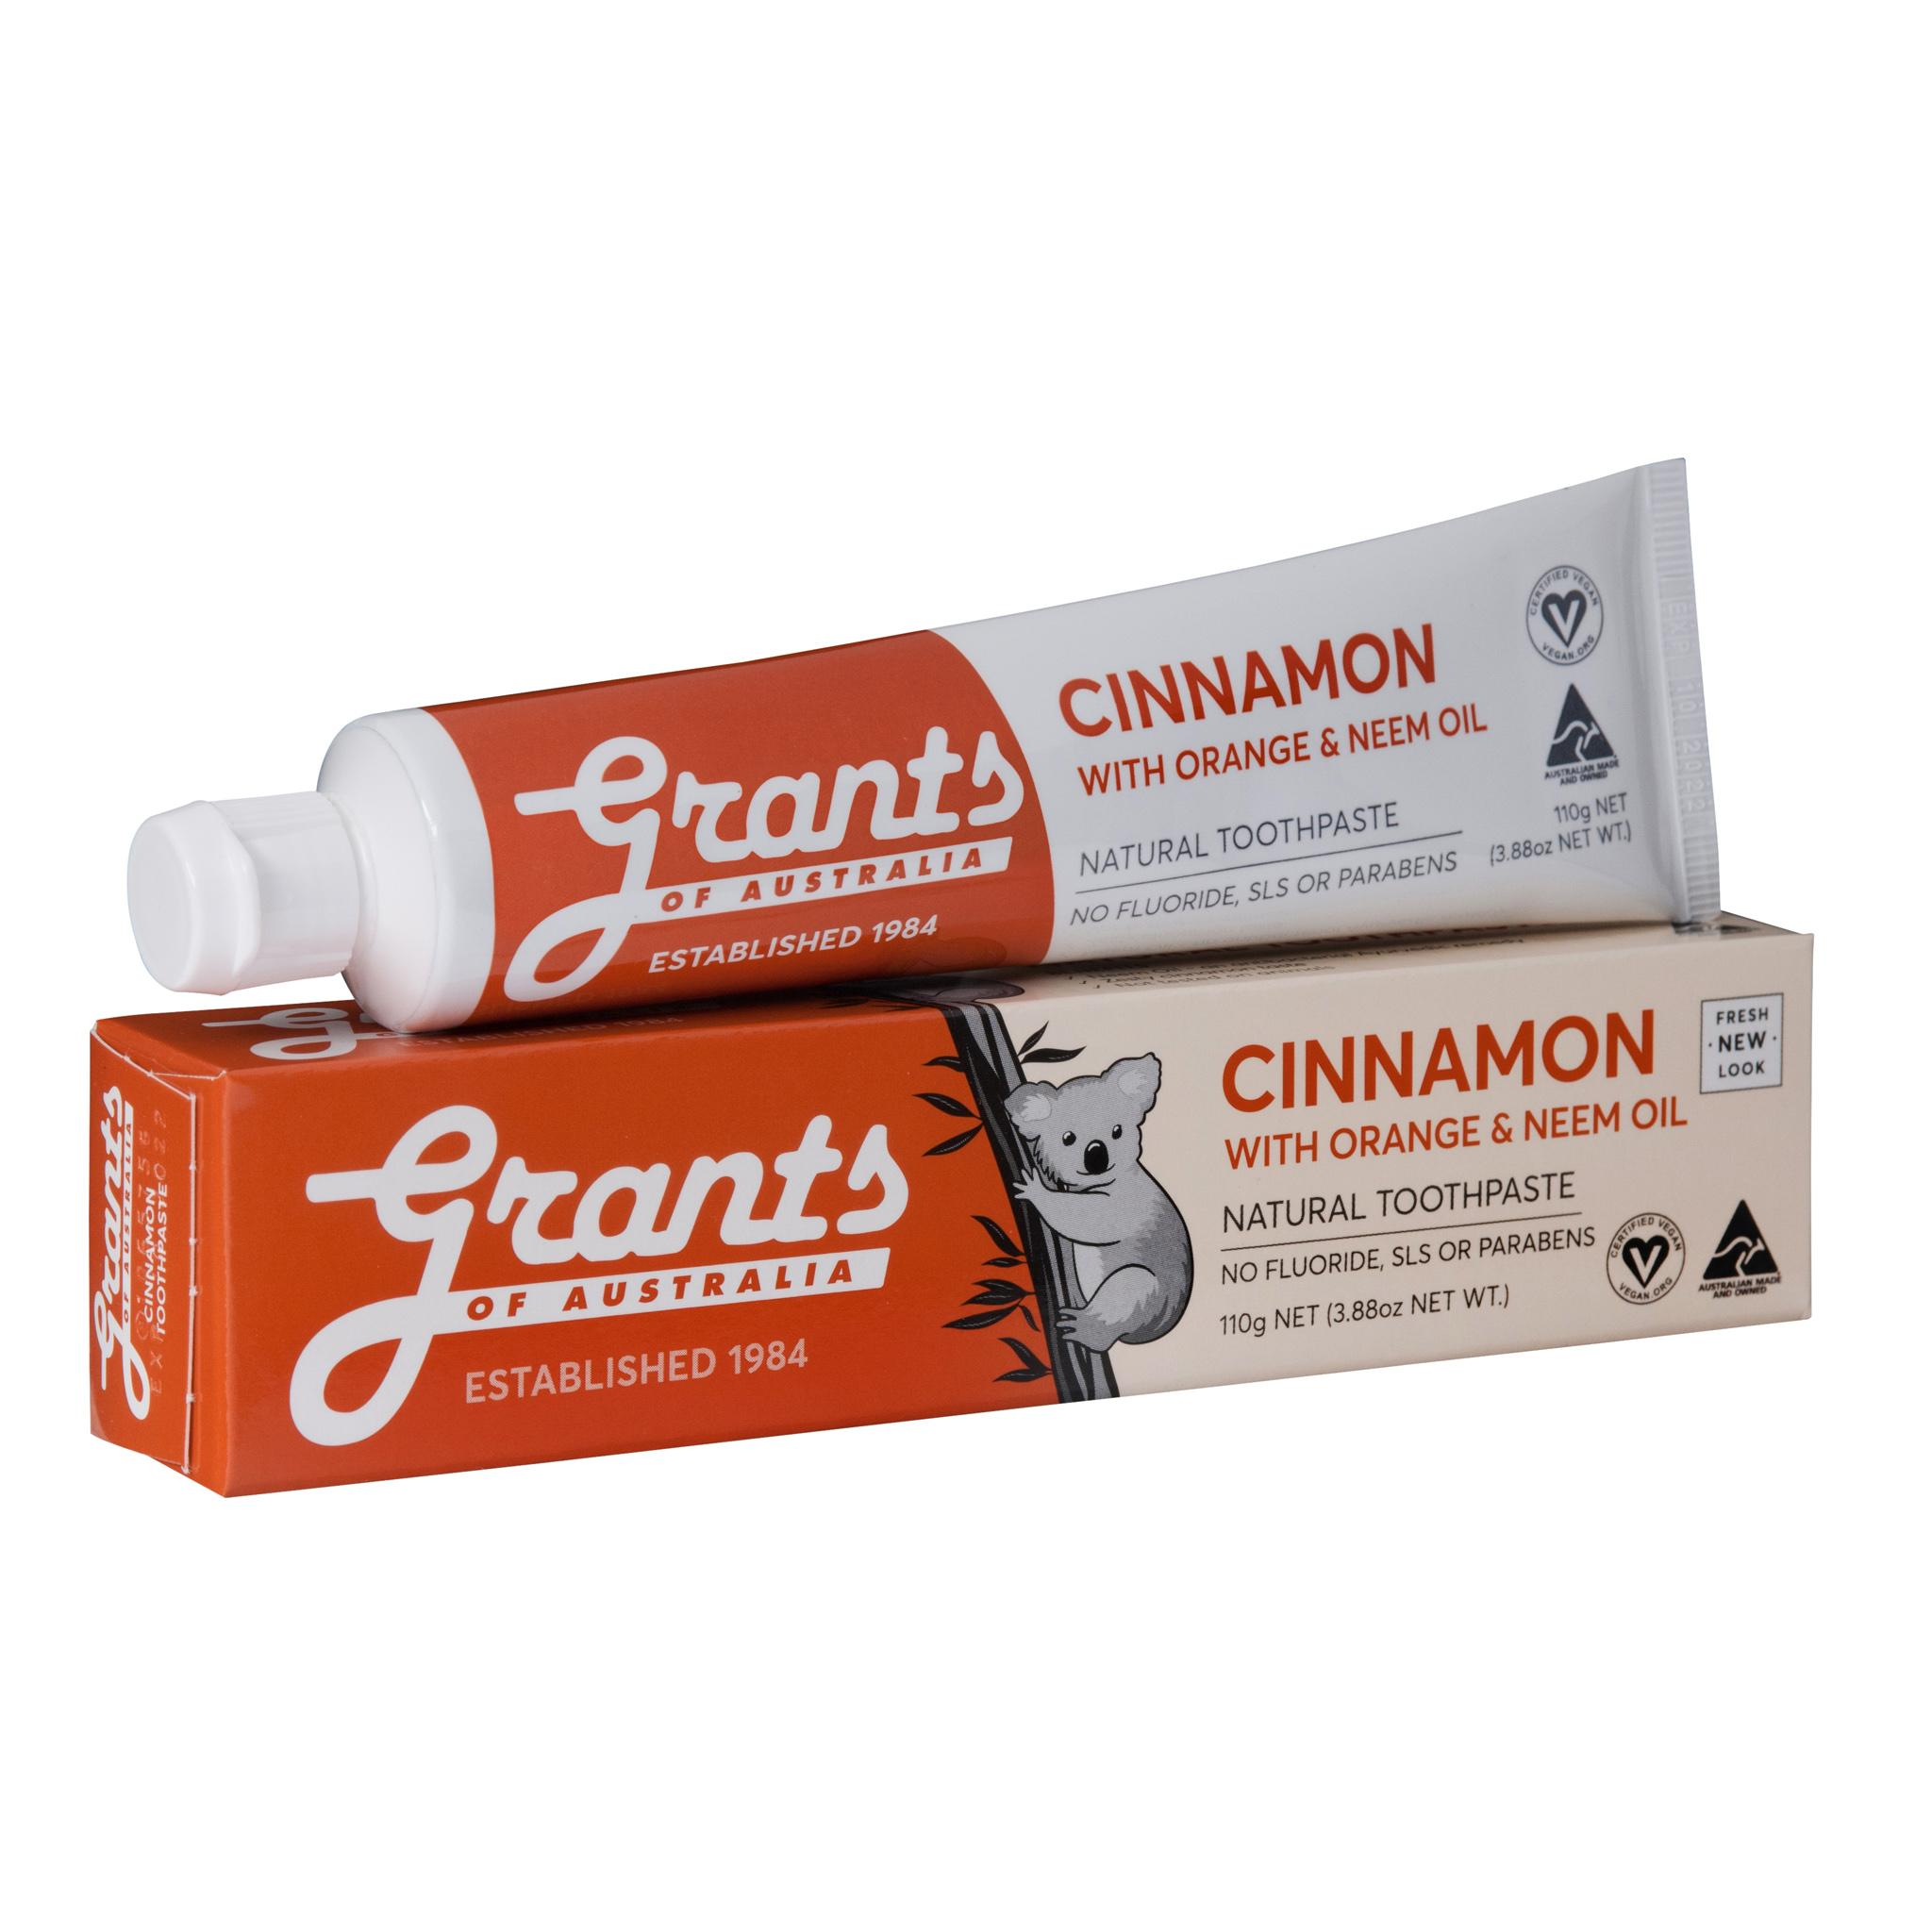 Grants Cinnamon Zest Toothpaste with Orange and Neem Oil 110g